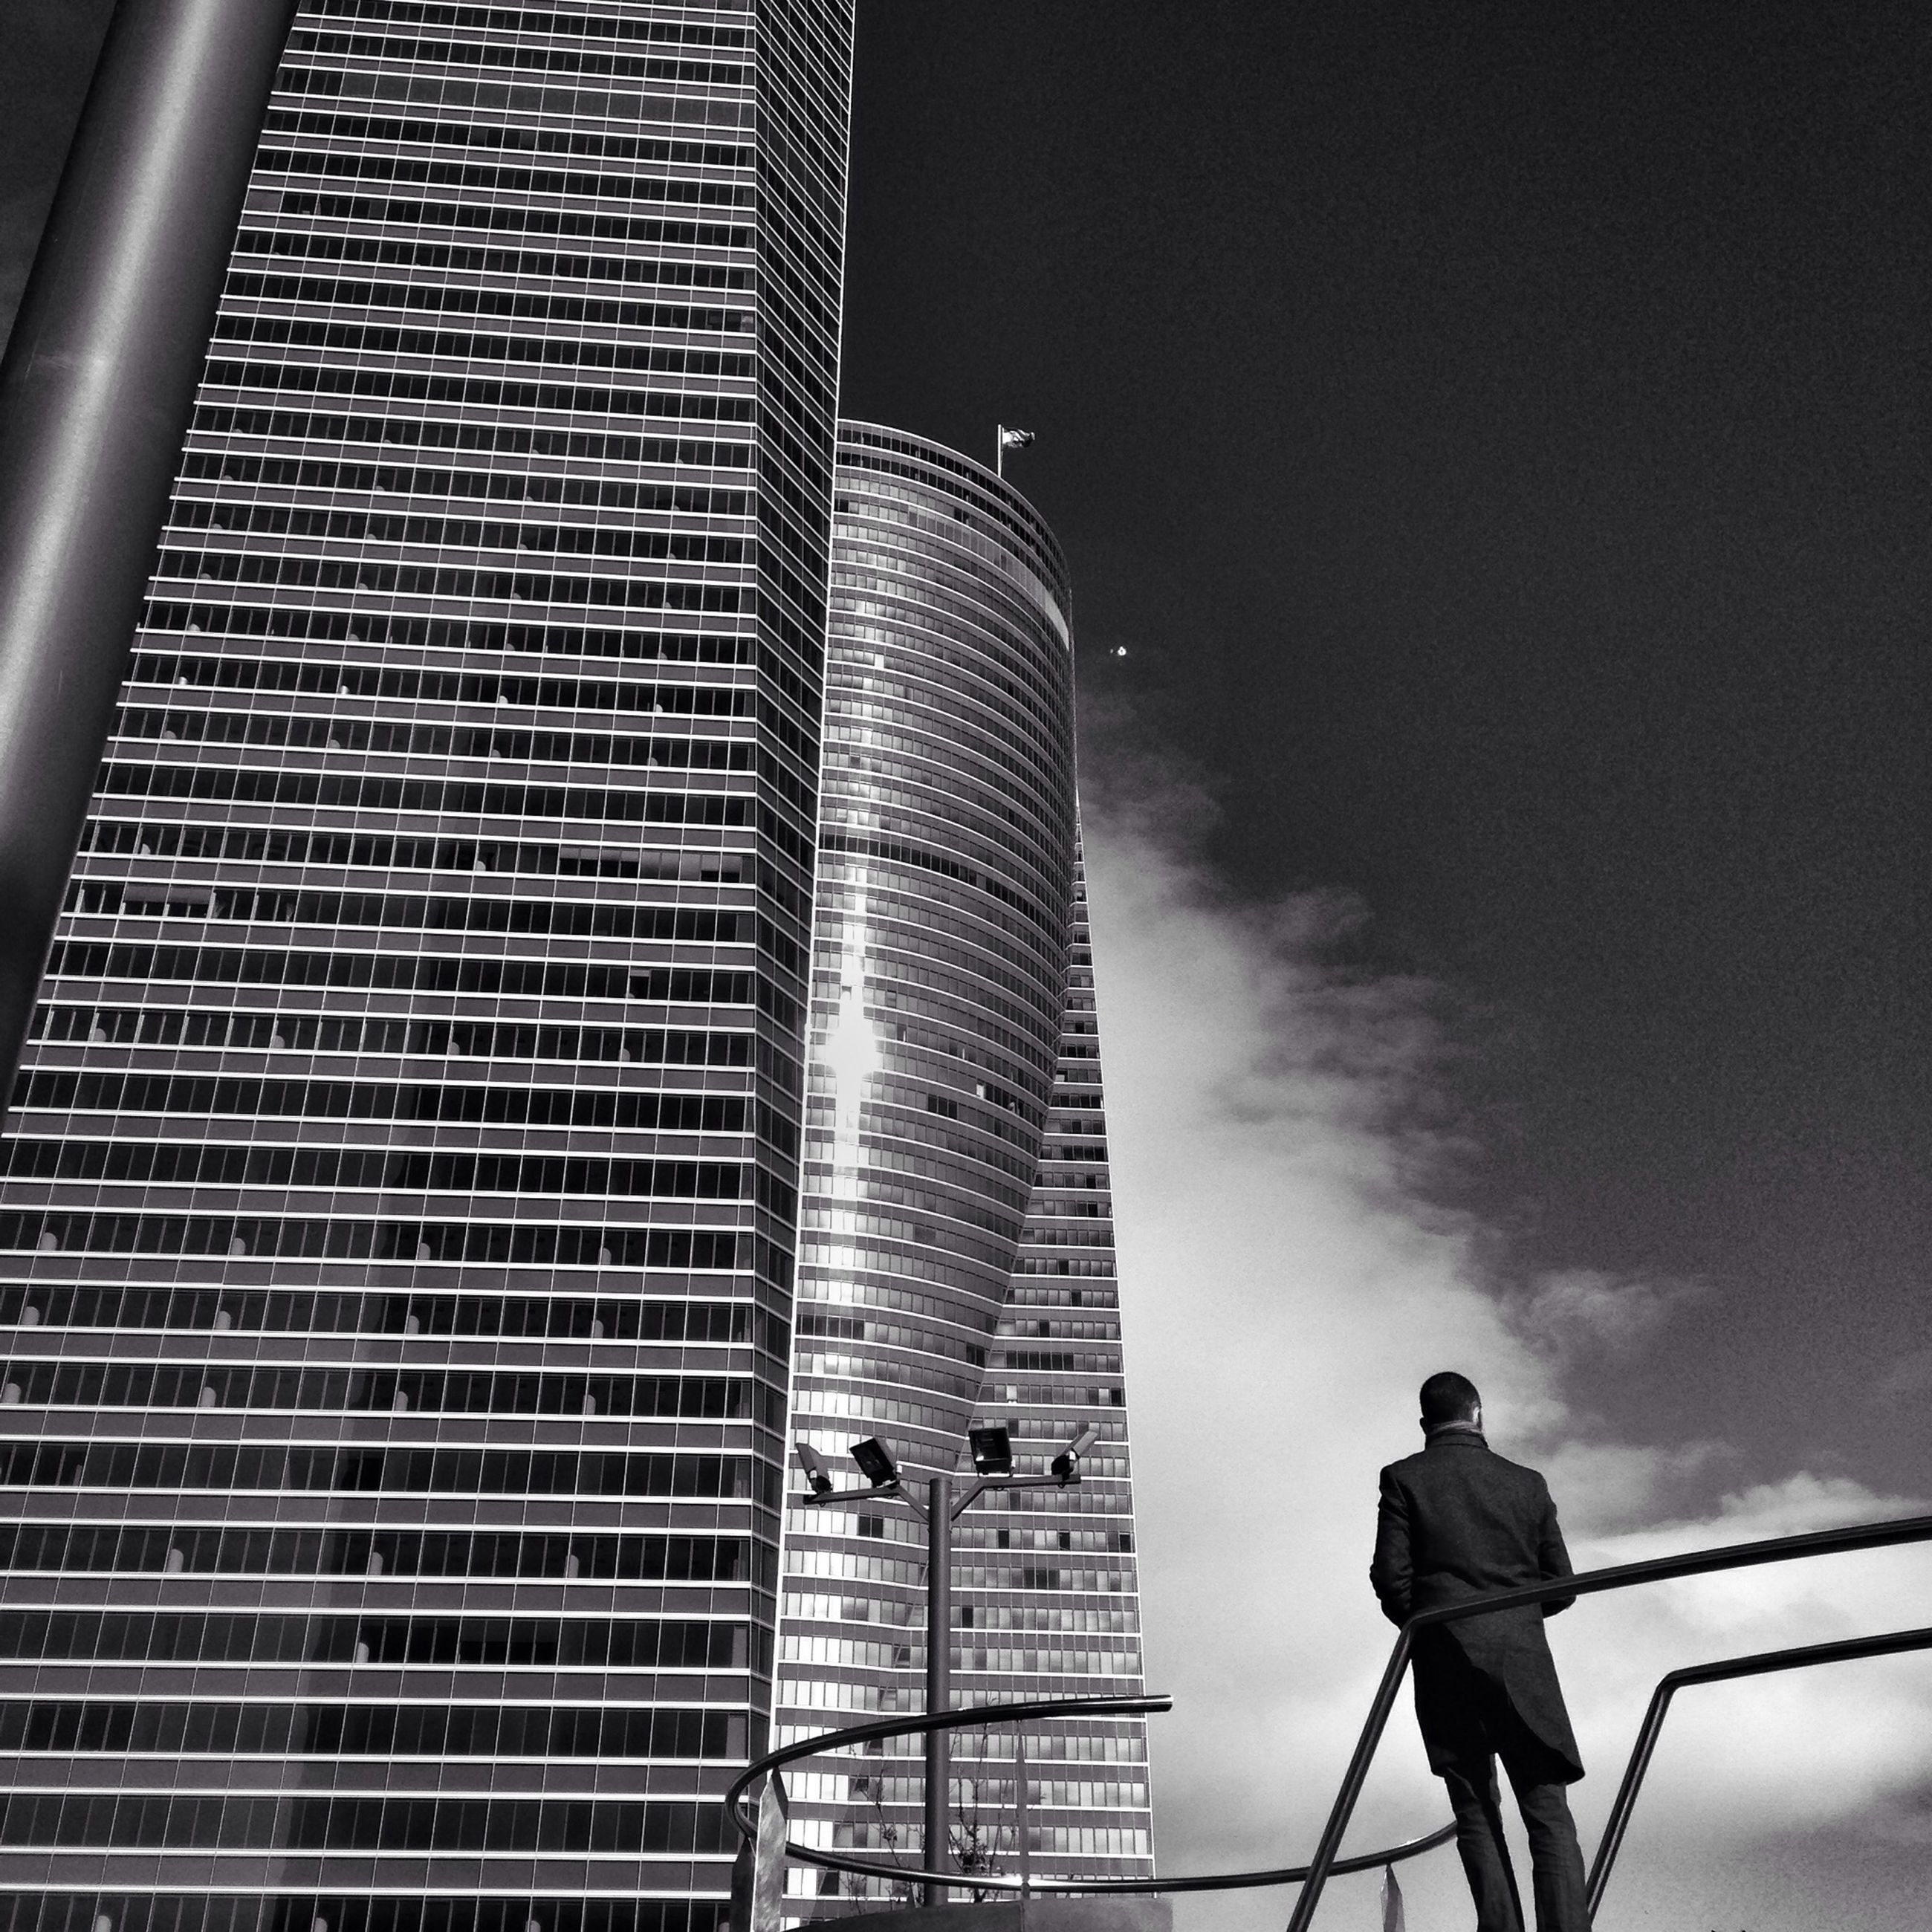 built structure, architecture, building exterior, low angle view, men, lifestyles, leisure activity, standing, city, rear view, sky, tower, tall - high, modern, casual clothing, building, city life, skyscraper